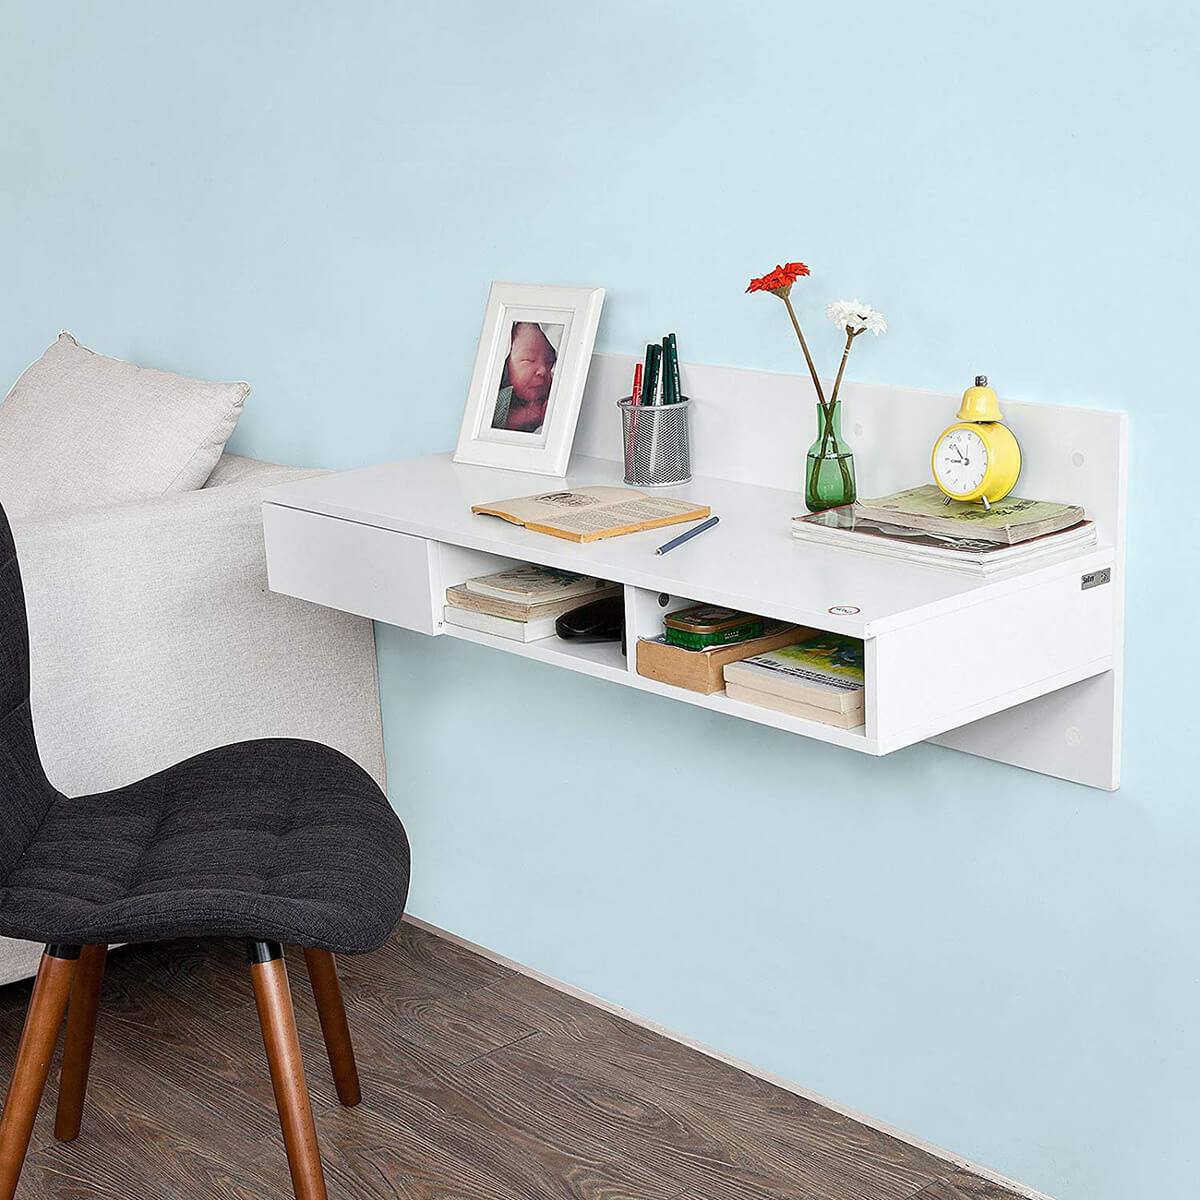 Solid Wall Home Office Desk Idea